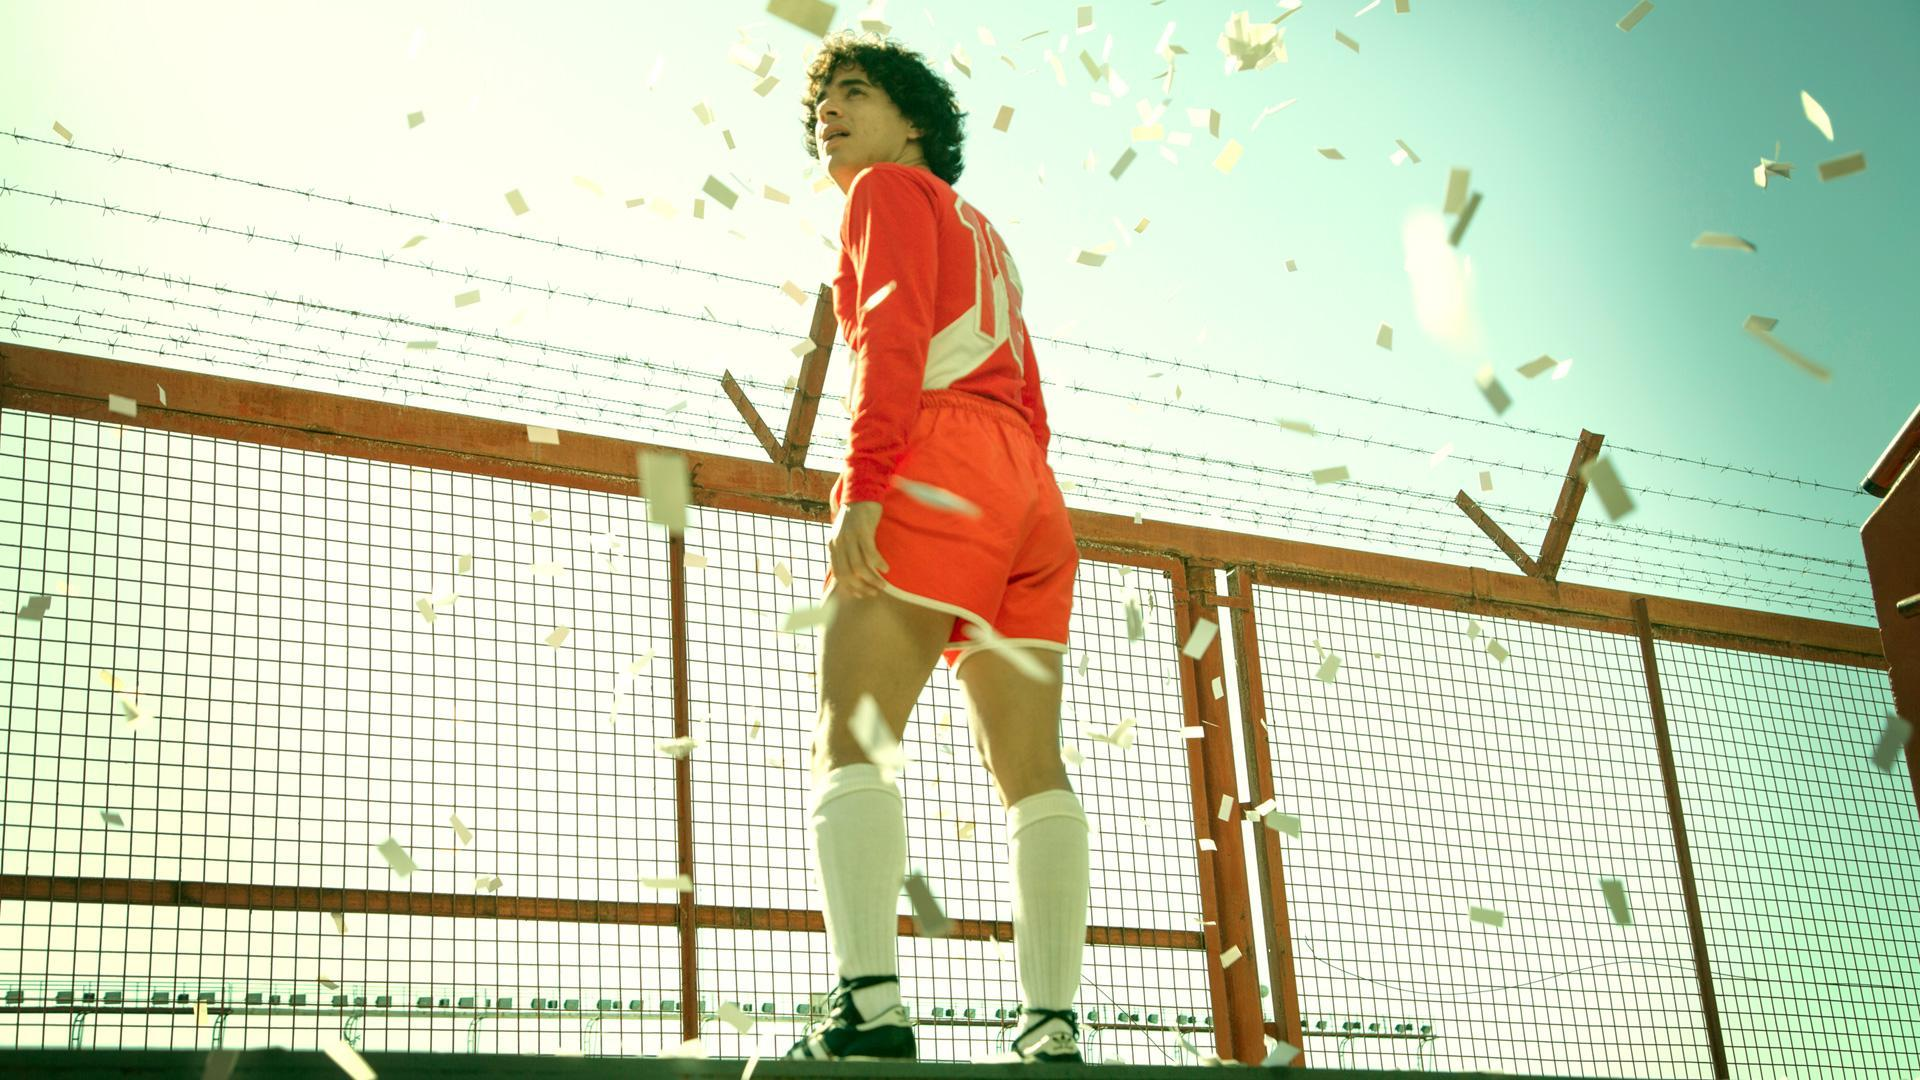 Image gallery for Maradona: Blessed Dream (TV Series) - FilmAffinity